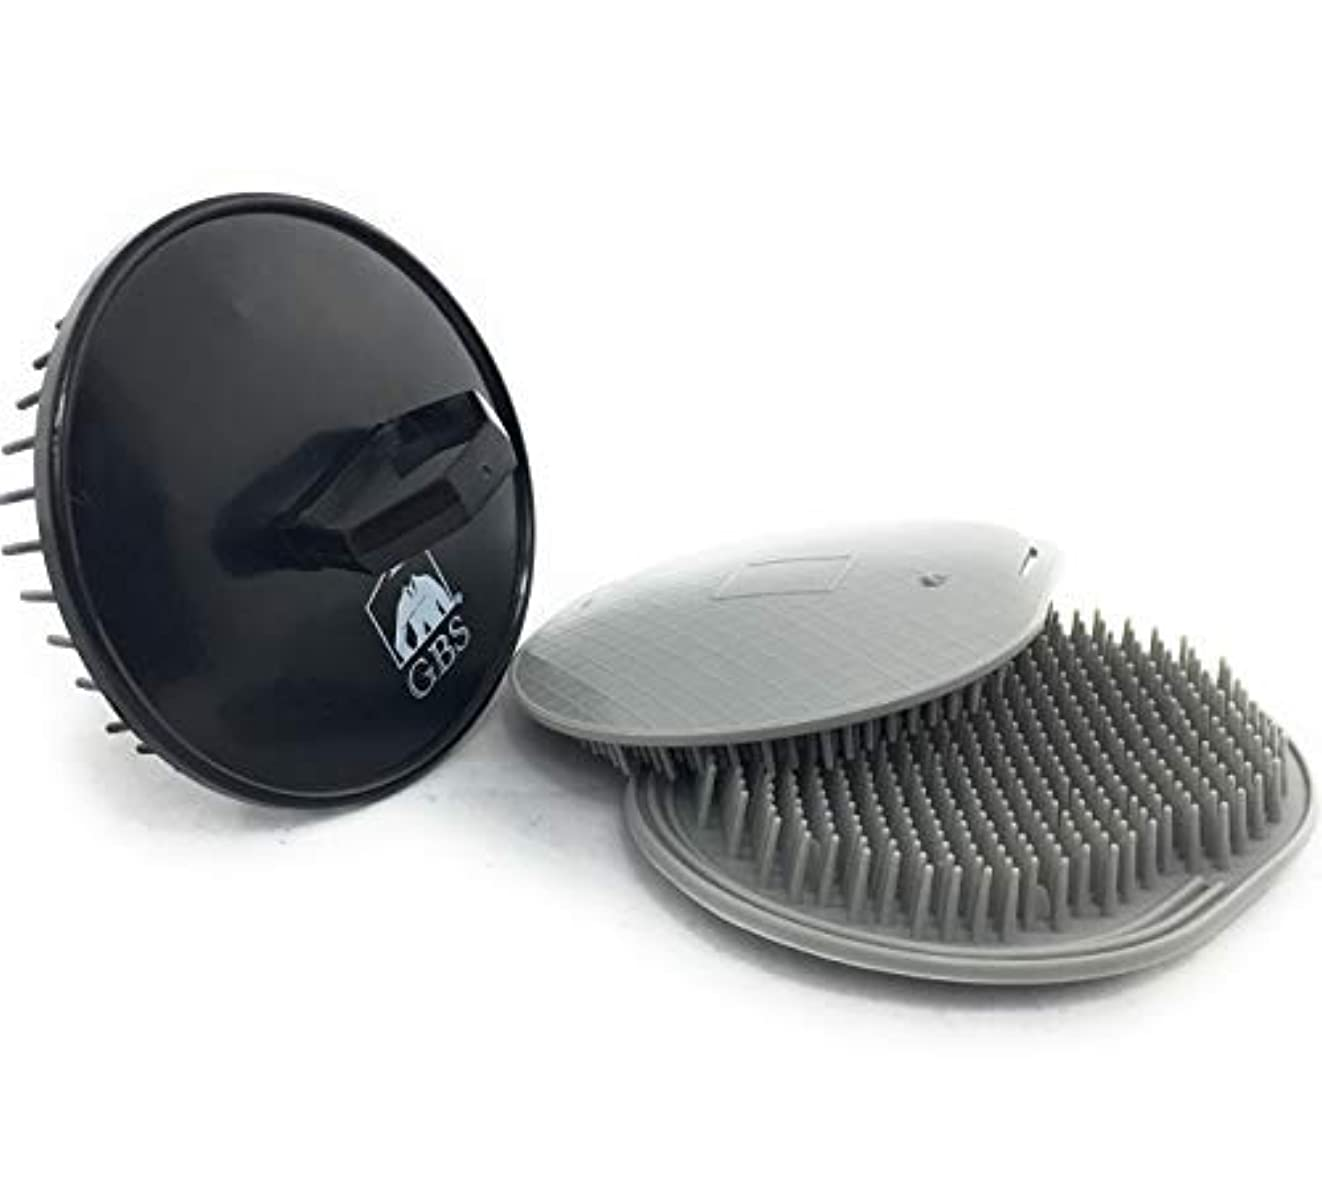 エンドテーブル多様な区GBS Soft Pocket Palm Brush. Massage and Head Scratcher. Made In USA 2-Pack - Gray Plus 1 Black Shampoo Brush -...